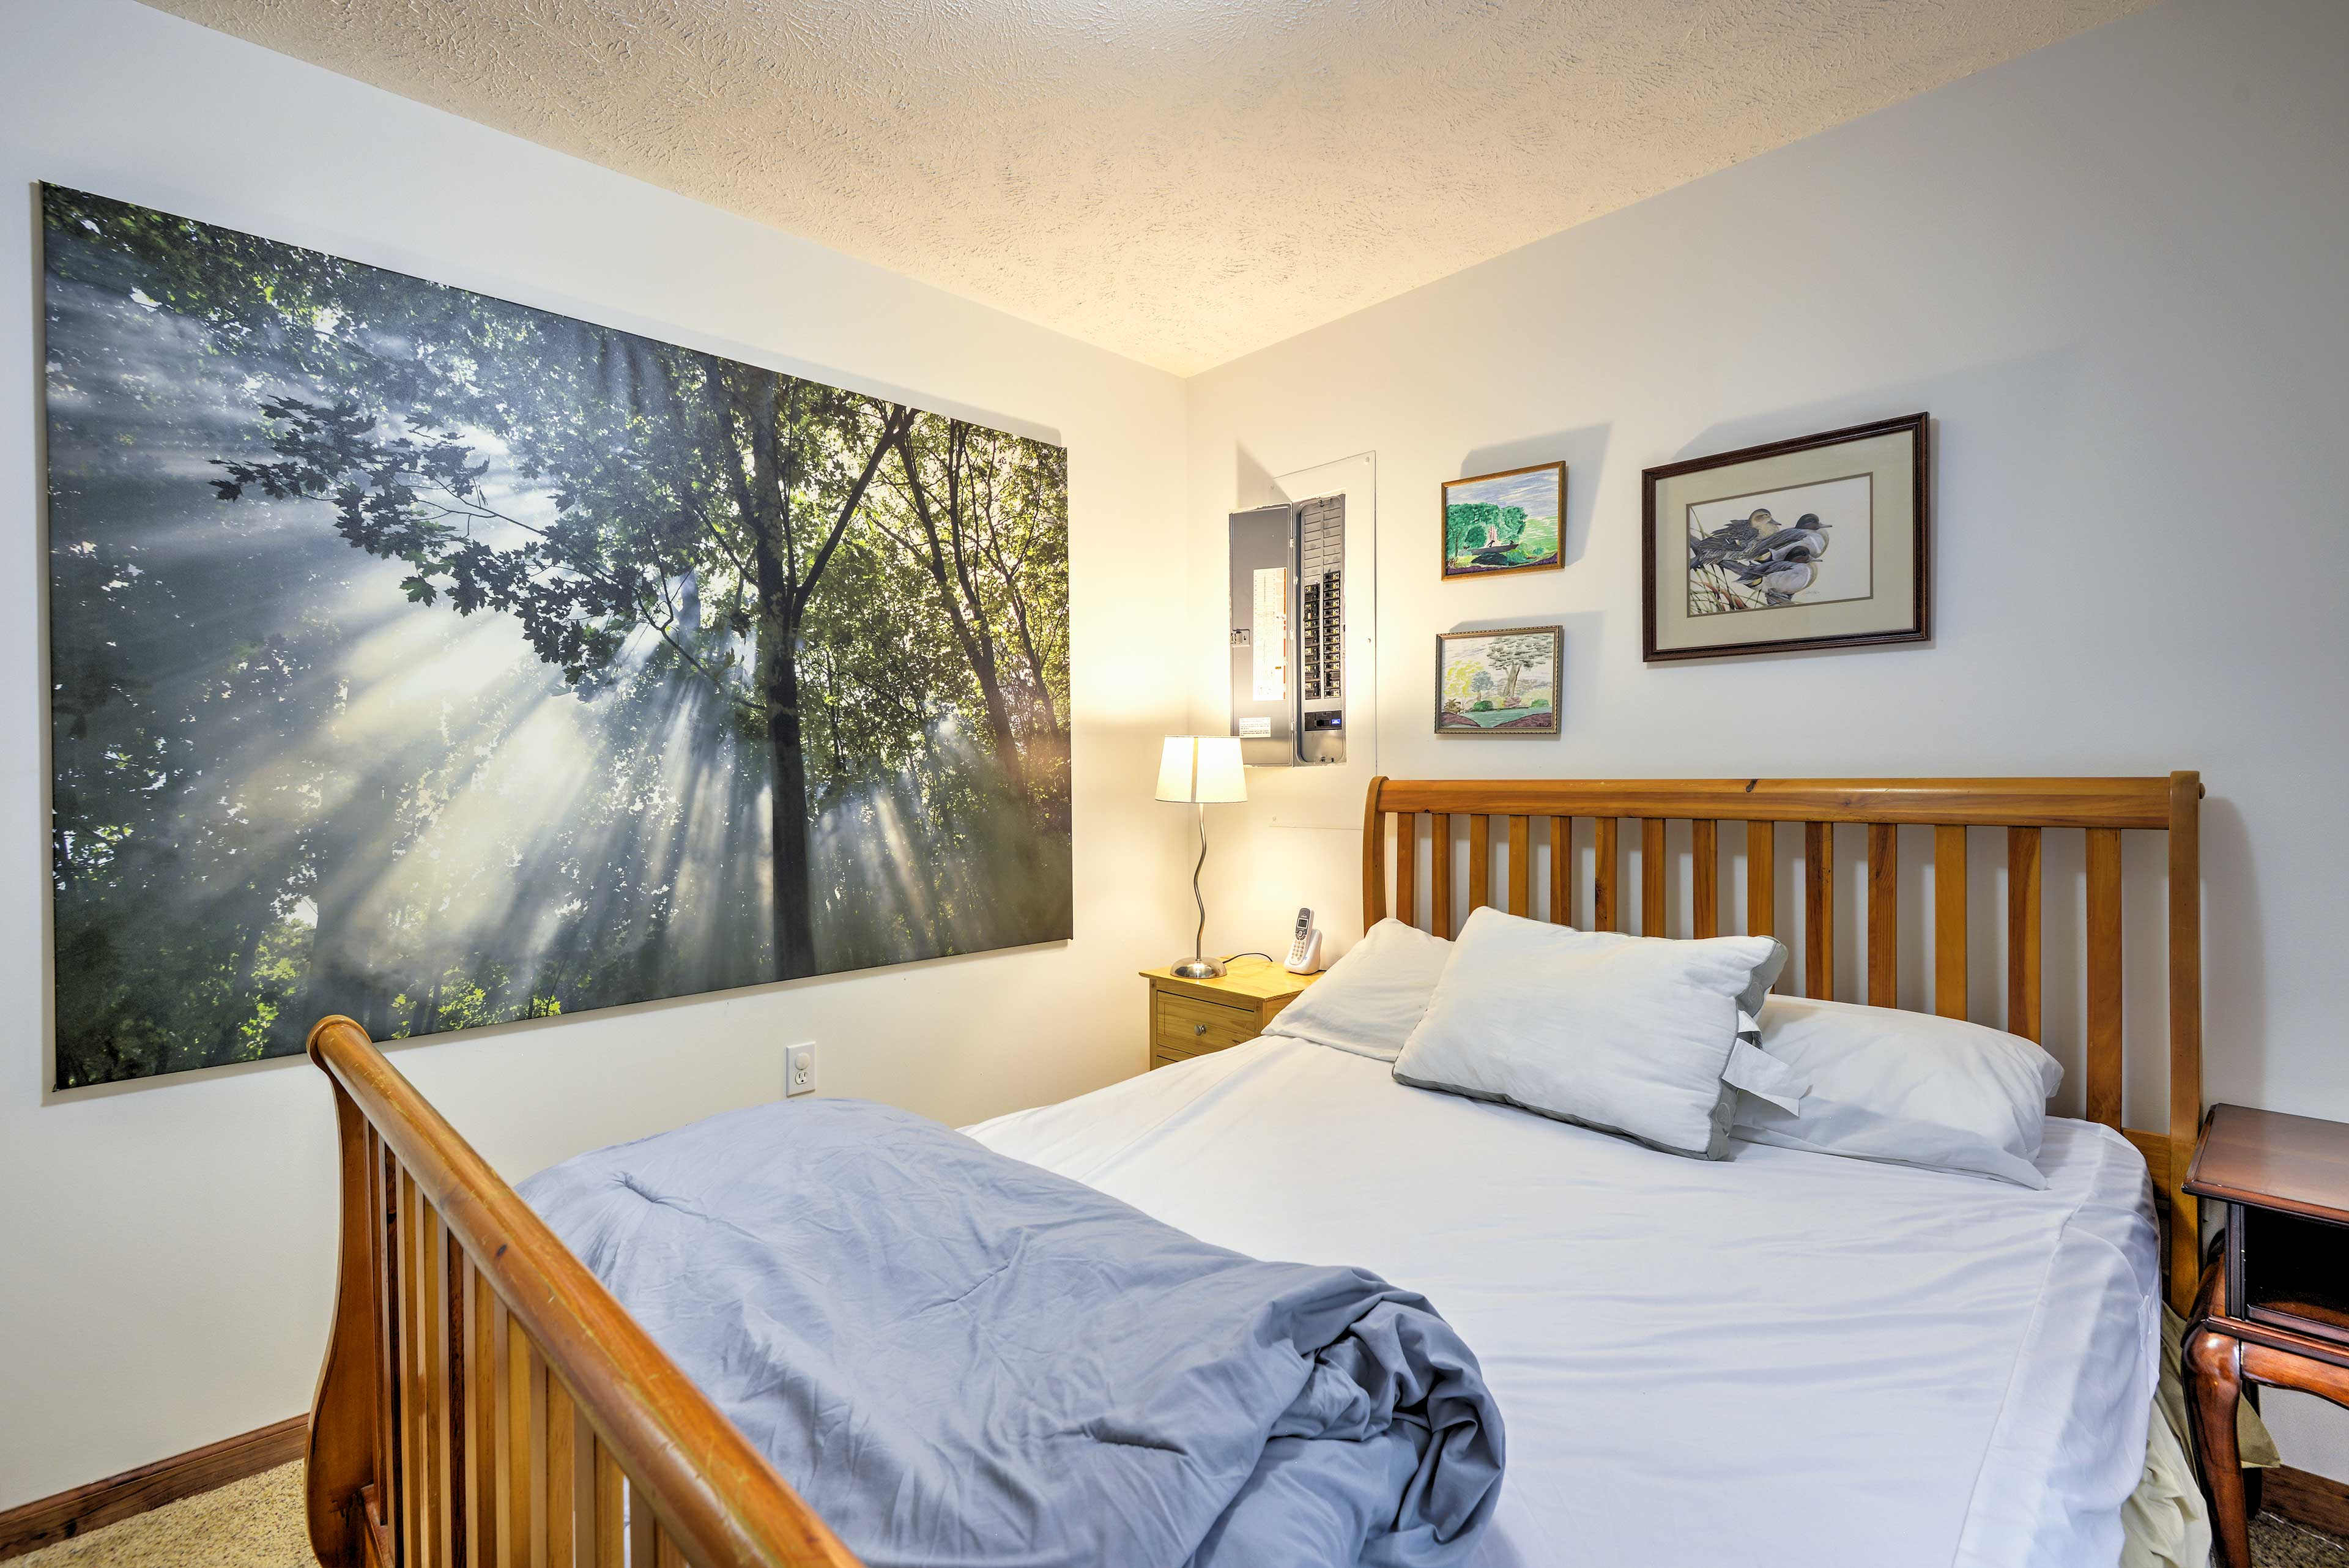 You'll find 3 bedrooms in the home with comfortable queen-sized beds.